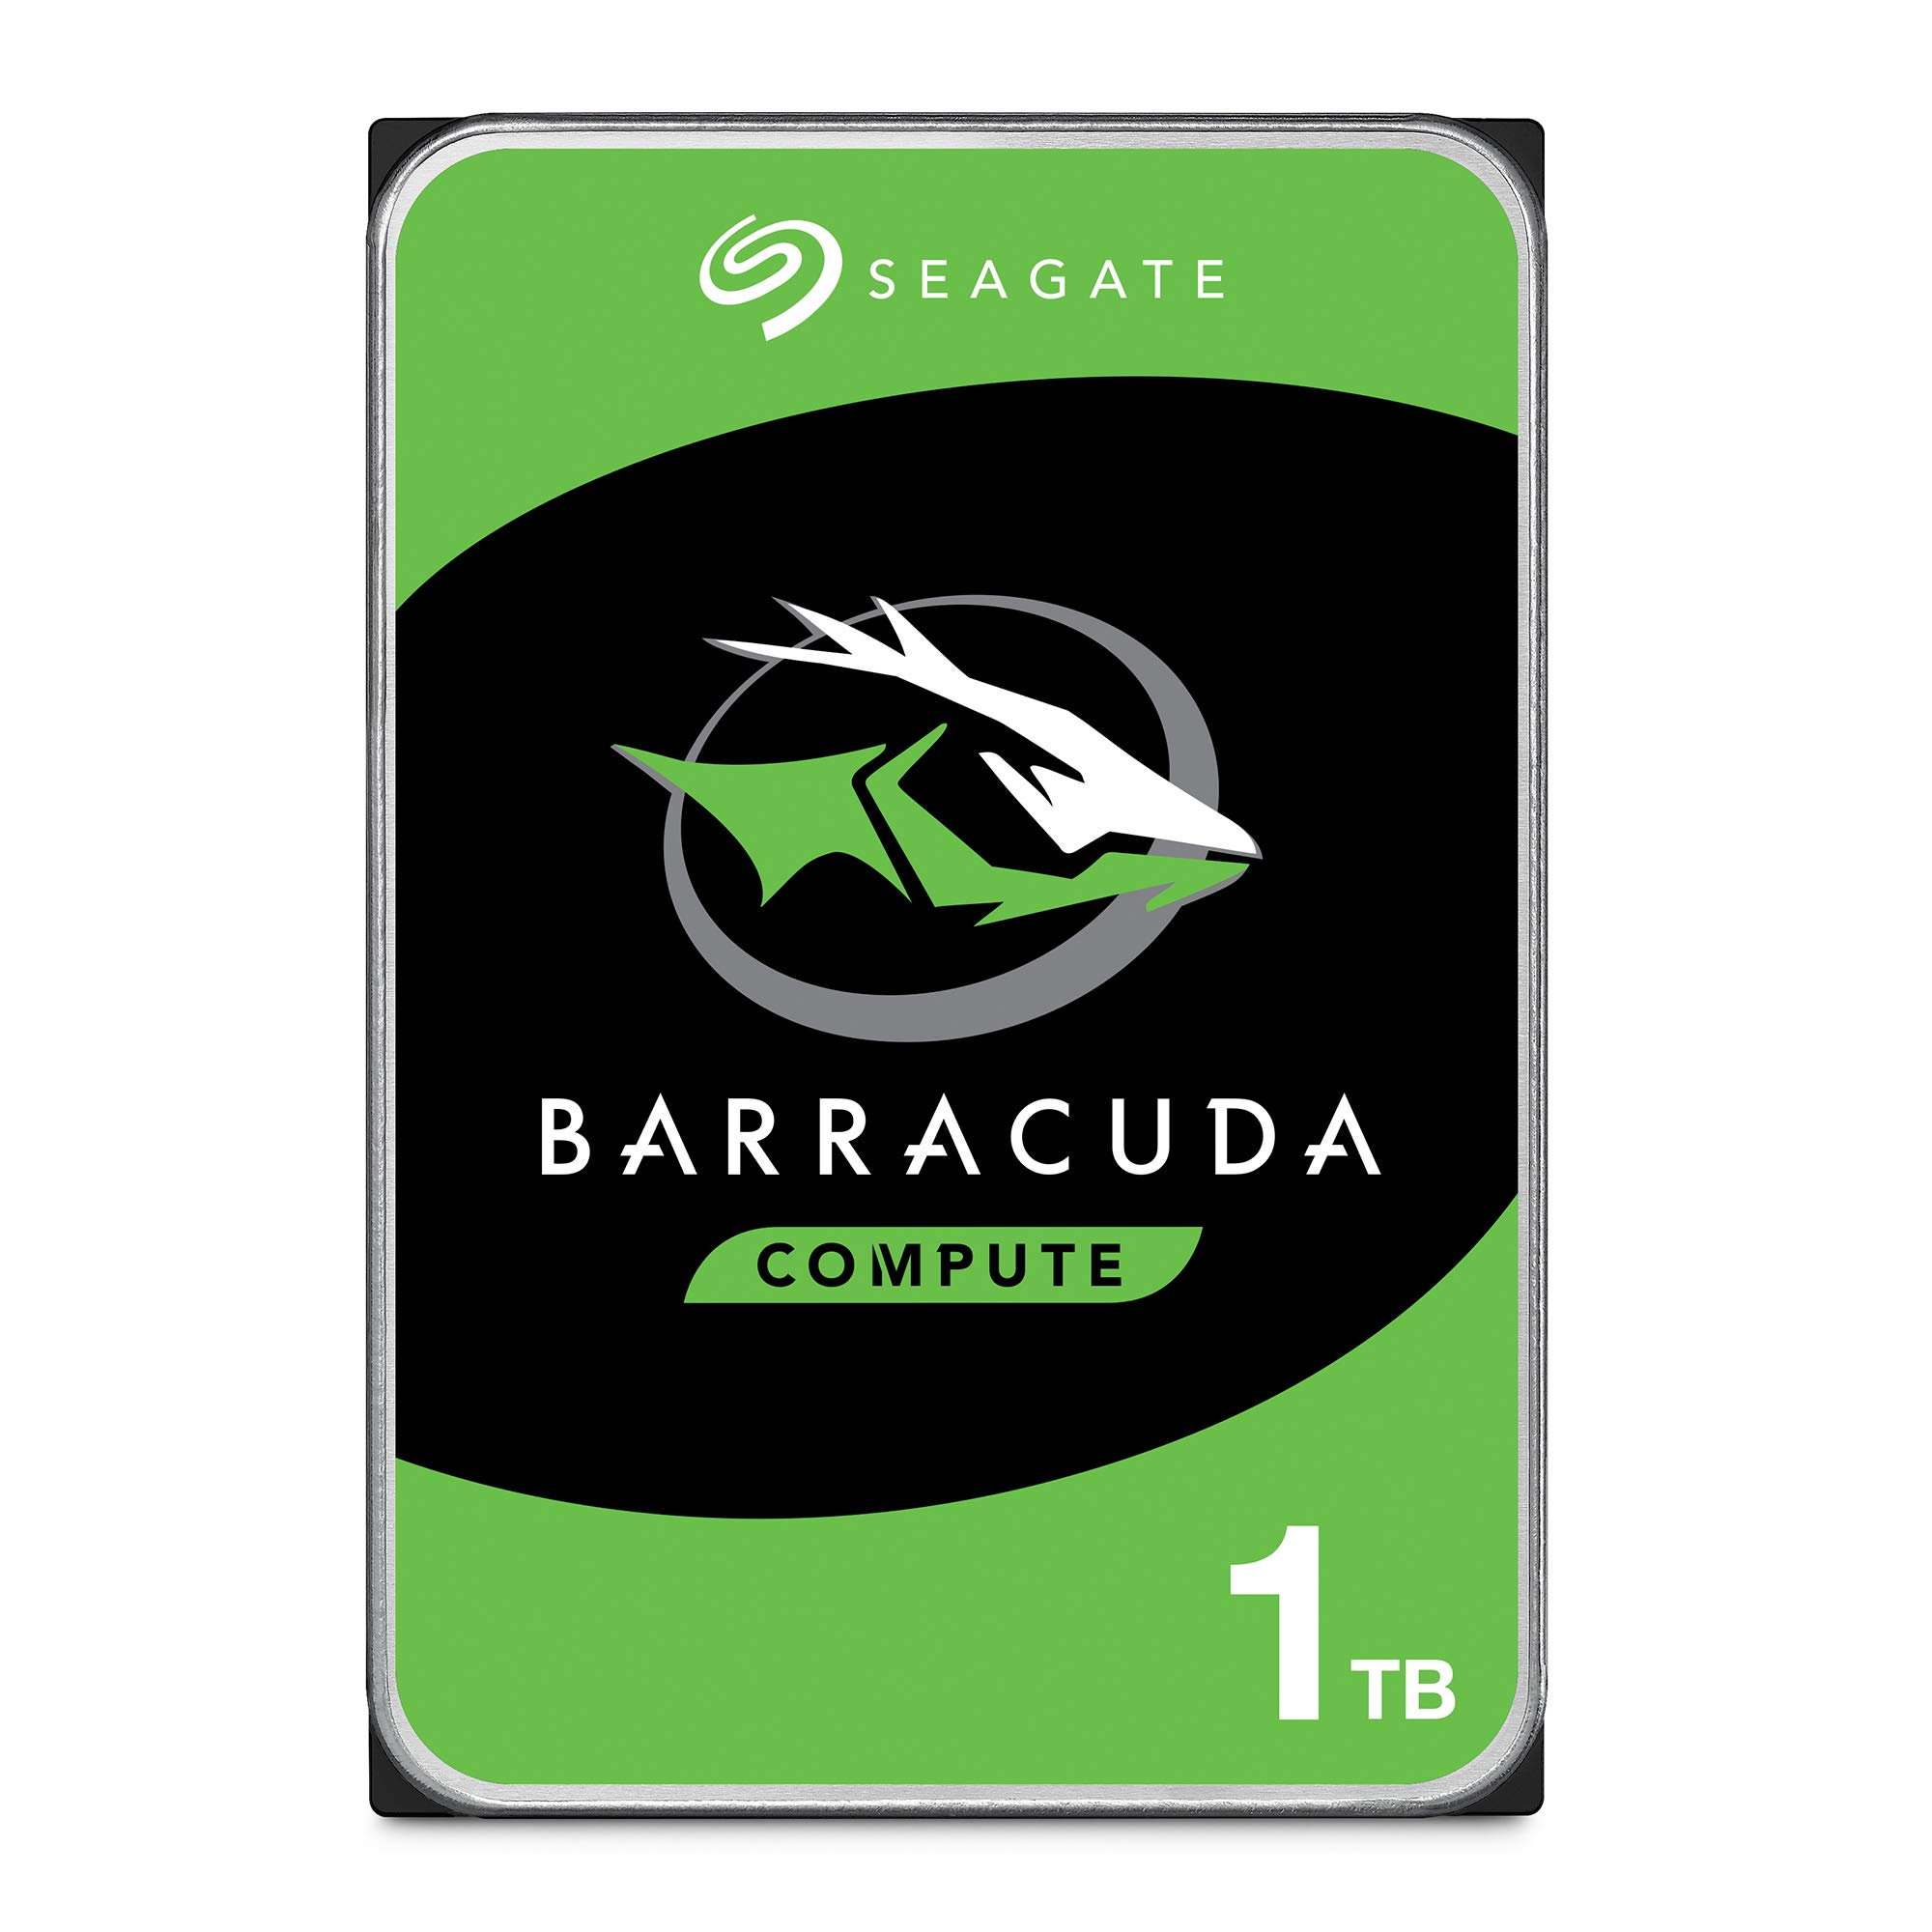 Seagate BarraCuda 1TB Internal Hard Drive HDD - 3.5 Inch SATA 6 Gb/s 7200 RPM 64MB Cache for Computer Desktop PC (ST1000DM010) by Seagate